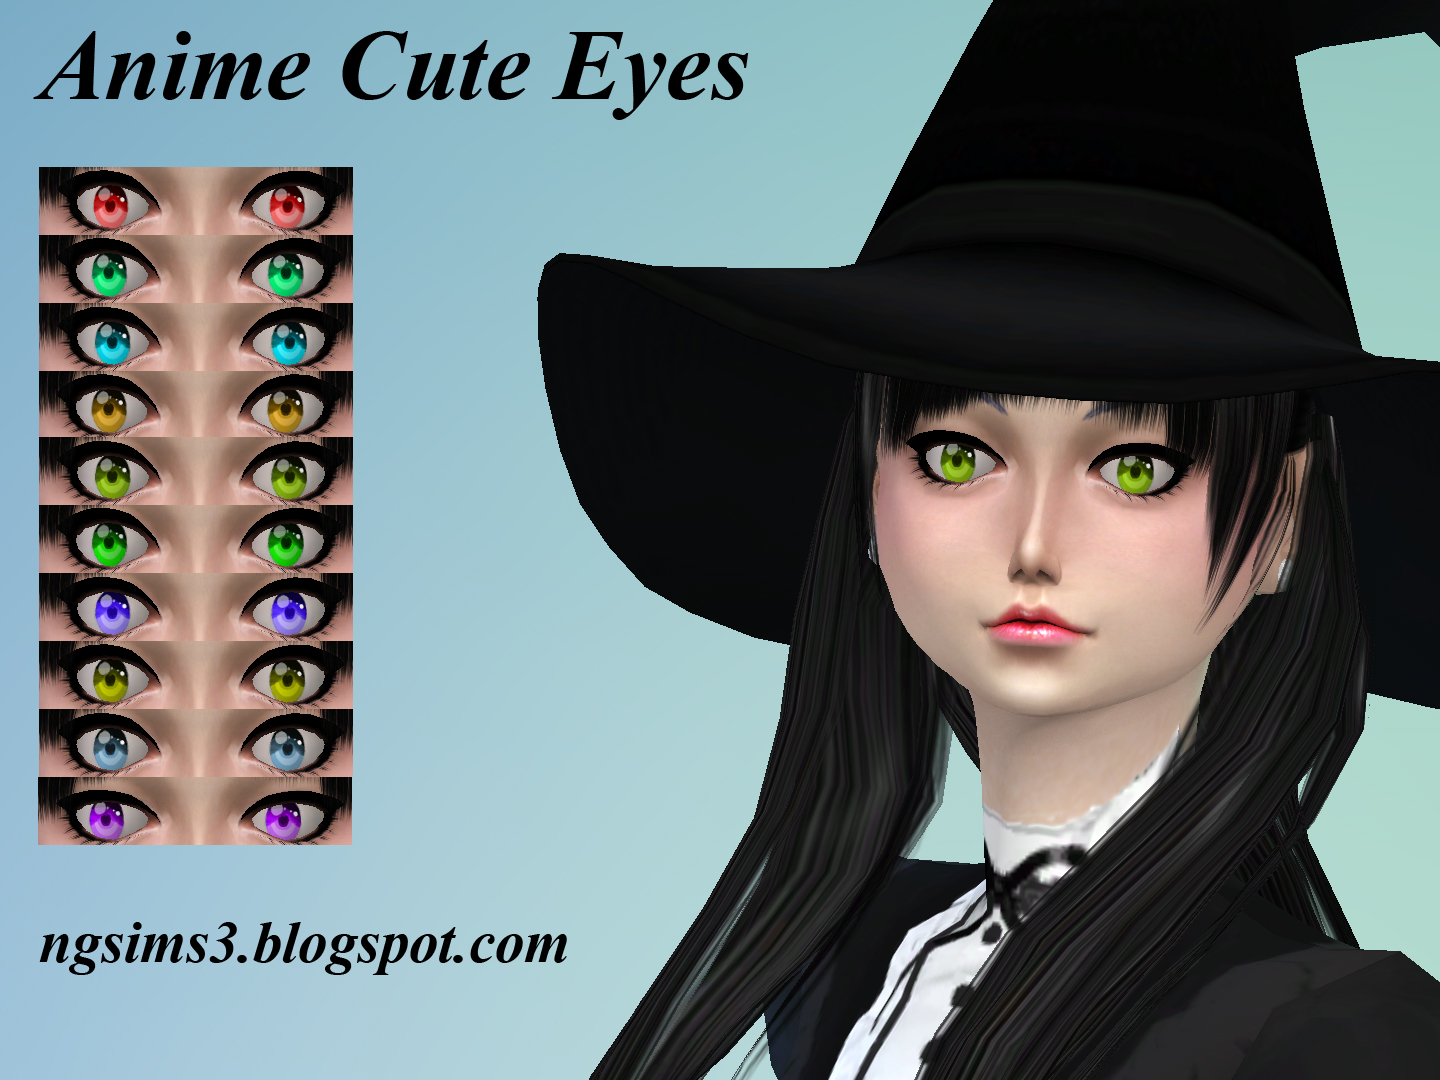 Sims 4 Anime Characters Mod : My sims anime cute eyes by ngsims